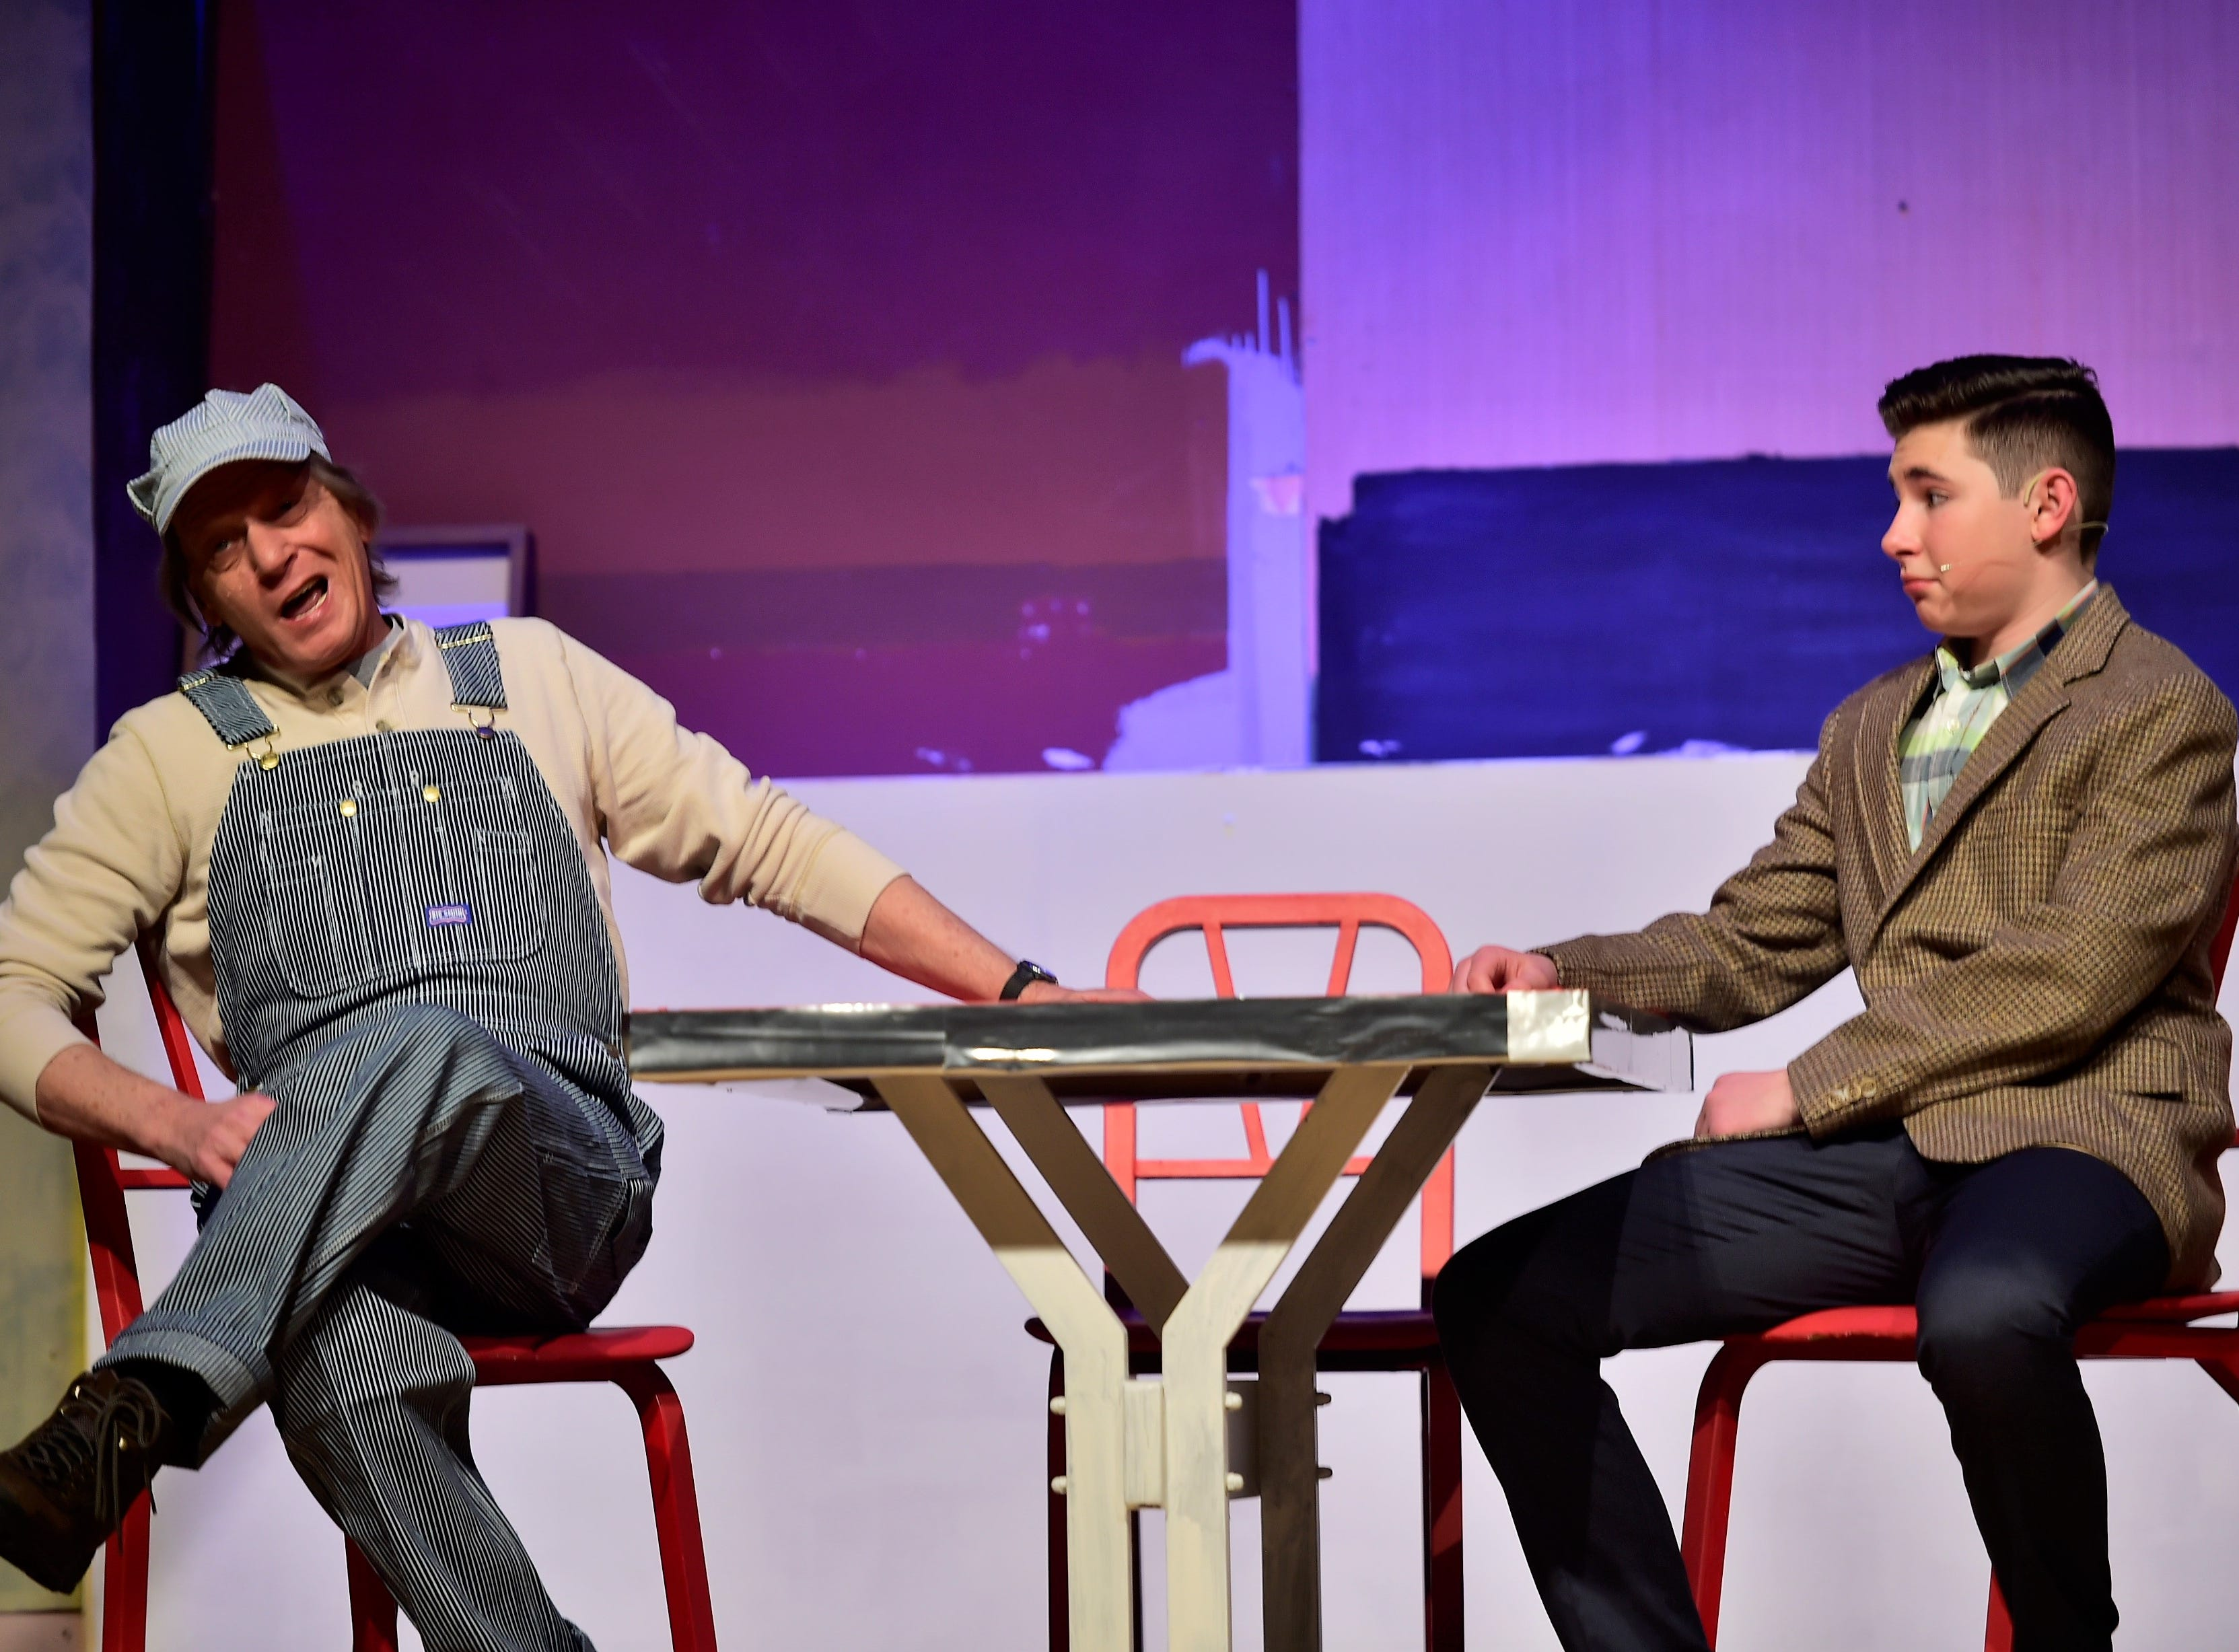 """Waynesboro teacher Gary Brett (Pops) and Jude Musolino (Sid Sorokin) rehearse a scene  from """"The Pajama Game,"""" on Sunday, March 10, 2019, at Waynesboro Area Senior High School. The musical, based on the 1953 novel, """"7 1/2 Cents"""" by Richard Bissell, tells the story of a pajama factory where workers are fighting for a raise of 7 1/2 cents. Showtimes for Waynesboro Area School District's All-School Production of """"The Pajama Game"""" are 7 p.m. Friday and Saturday, March 15 and 16, and 2 p.m. Sunday, March 17 in the high school auditorium. For choose-your-seat tickets, $10 for adults and $6 for children under 12, go to https://washsmusic.ticketleap.com/the-pajama-game/. General admission tickets will also be sold at the door."""